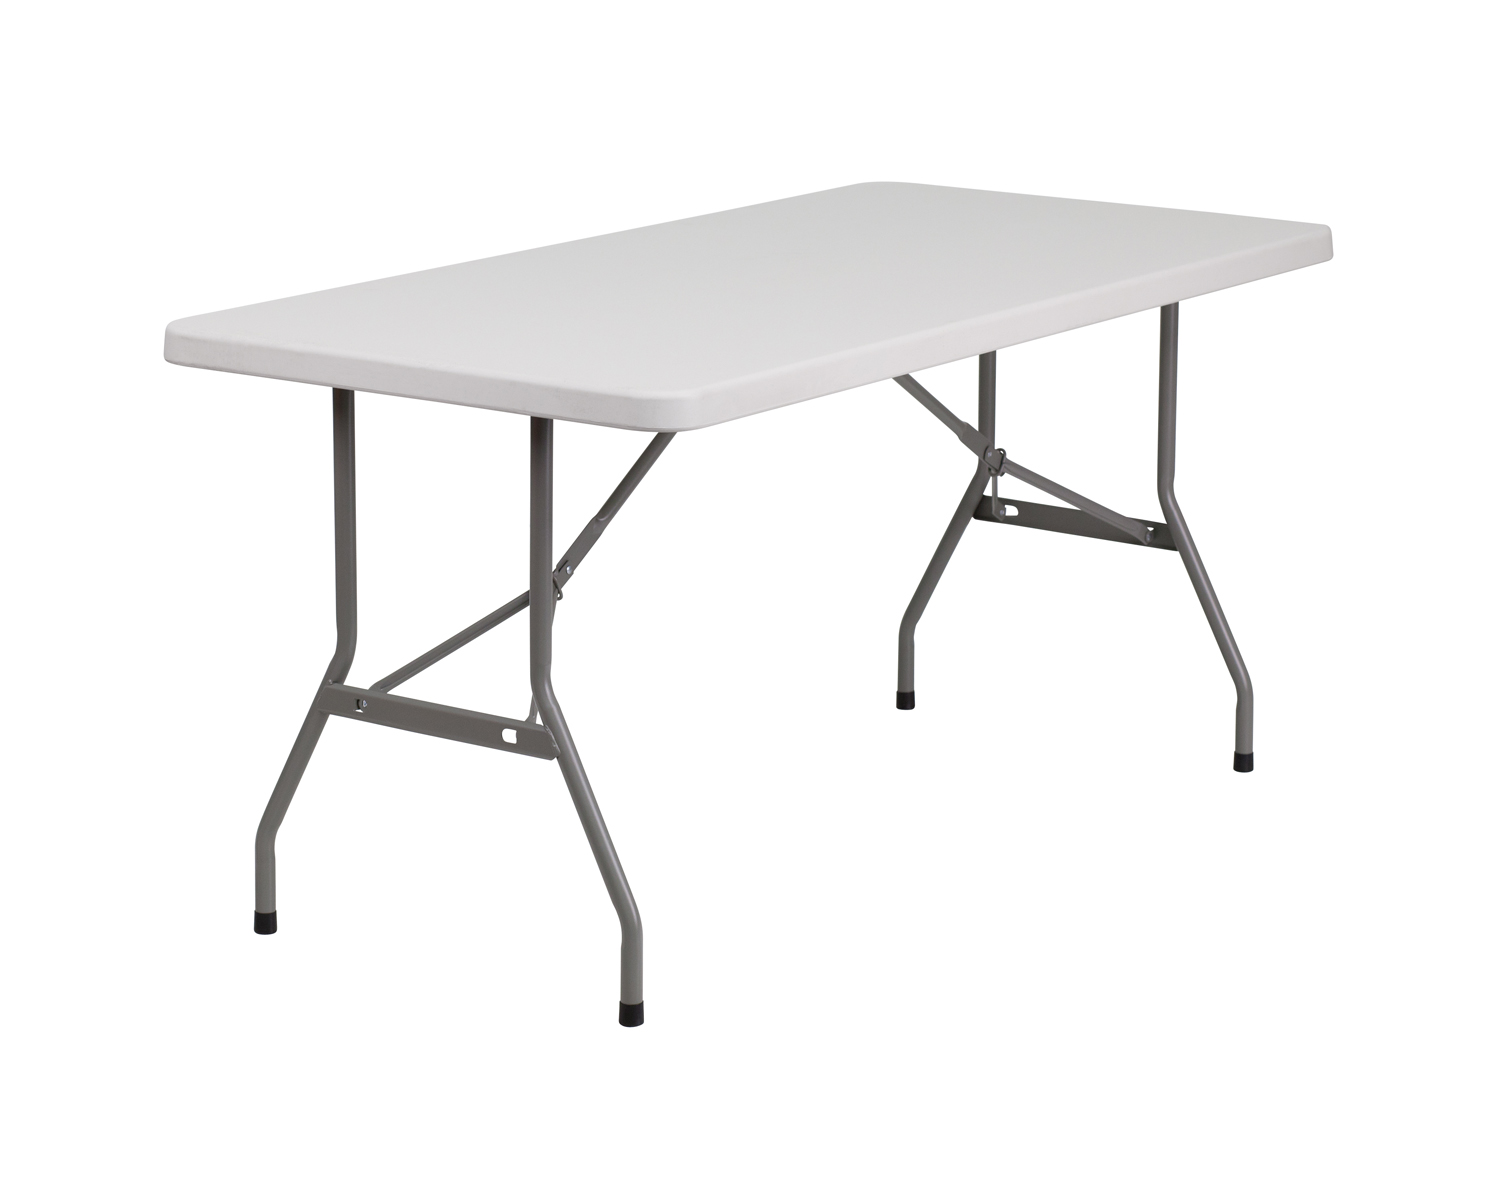 Plastic Folding Table : Flash Furniture 30W X 60L Blow Molded Plastic Folding Table  eBay